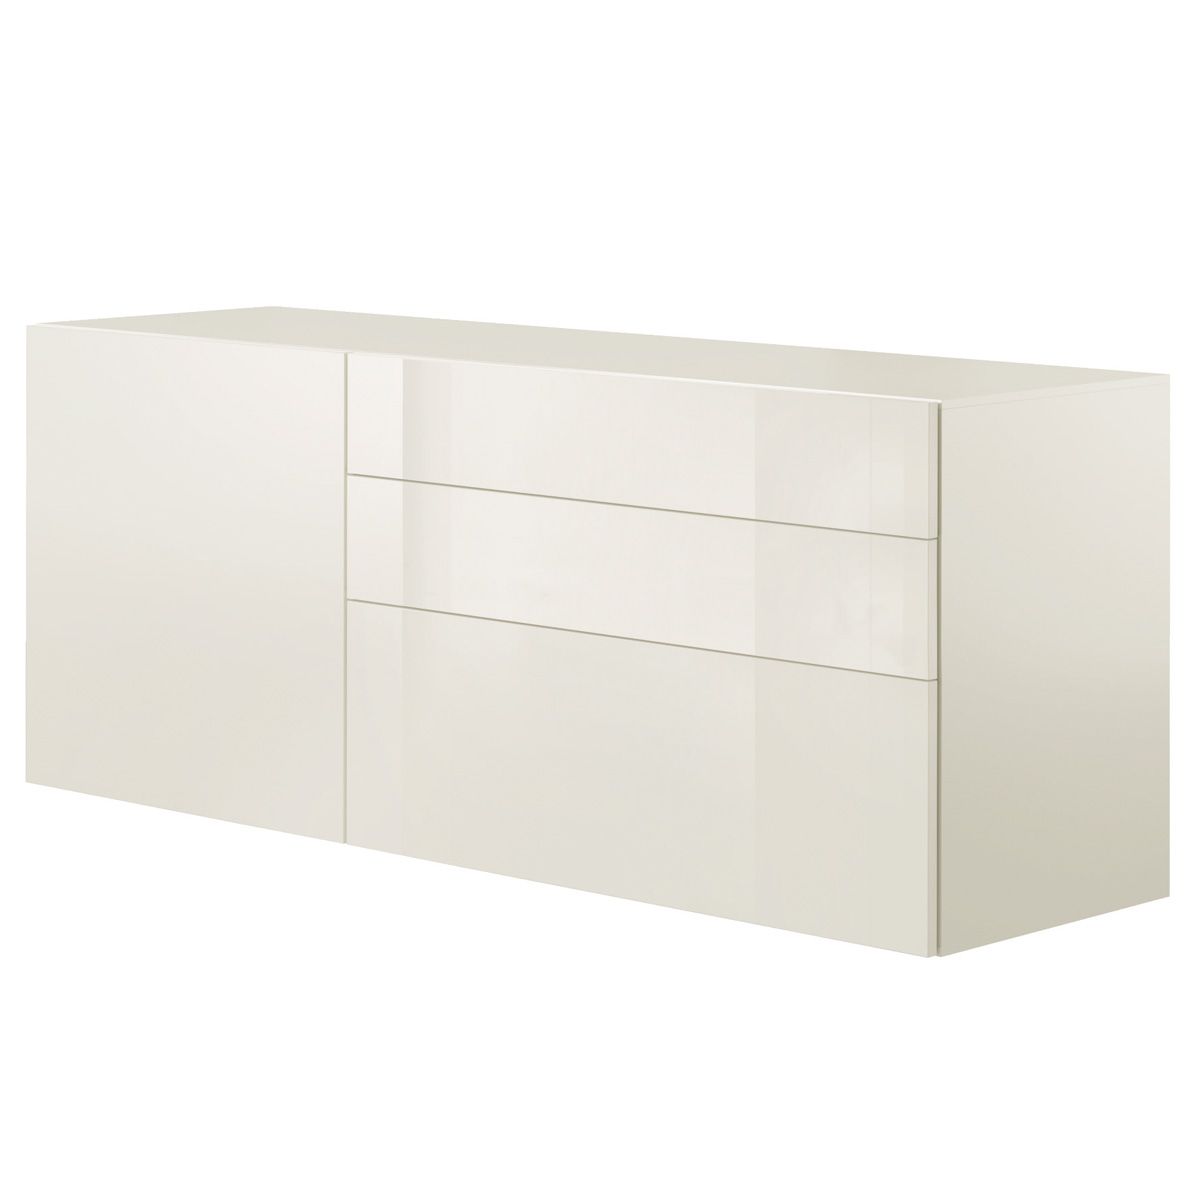 Now Vision By Hülsta Sideboard 4r 3 Schubladen